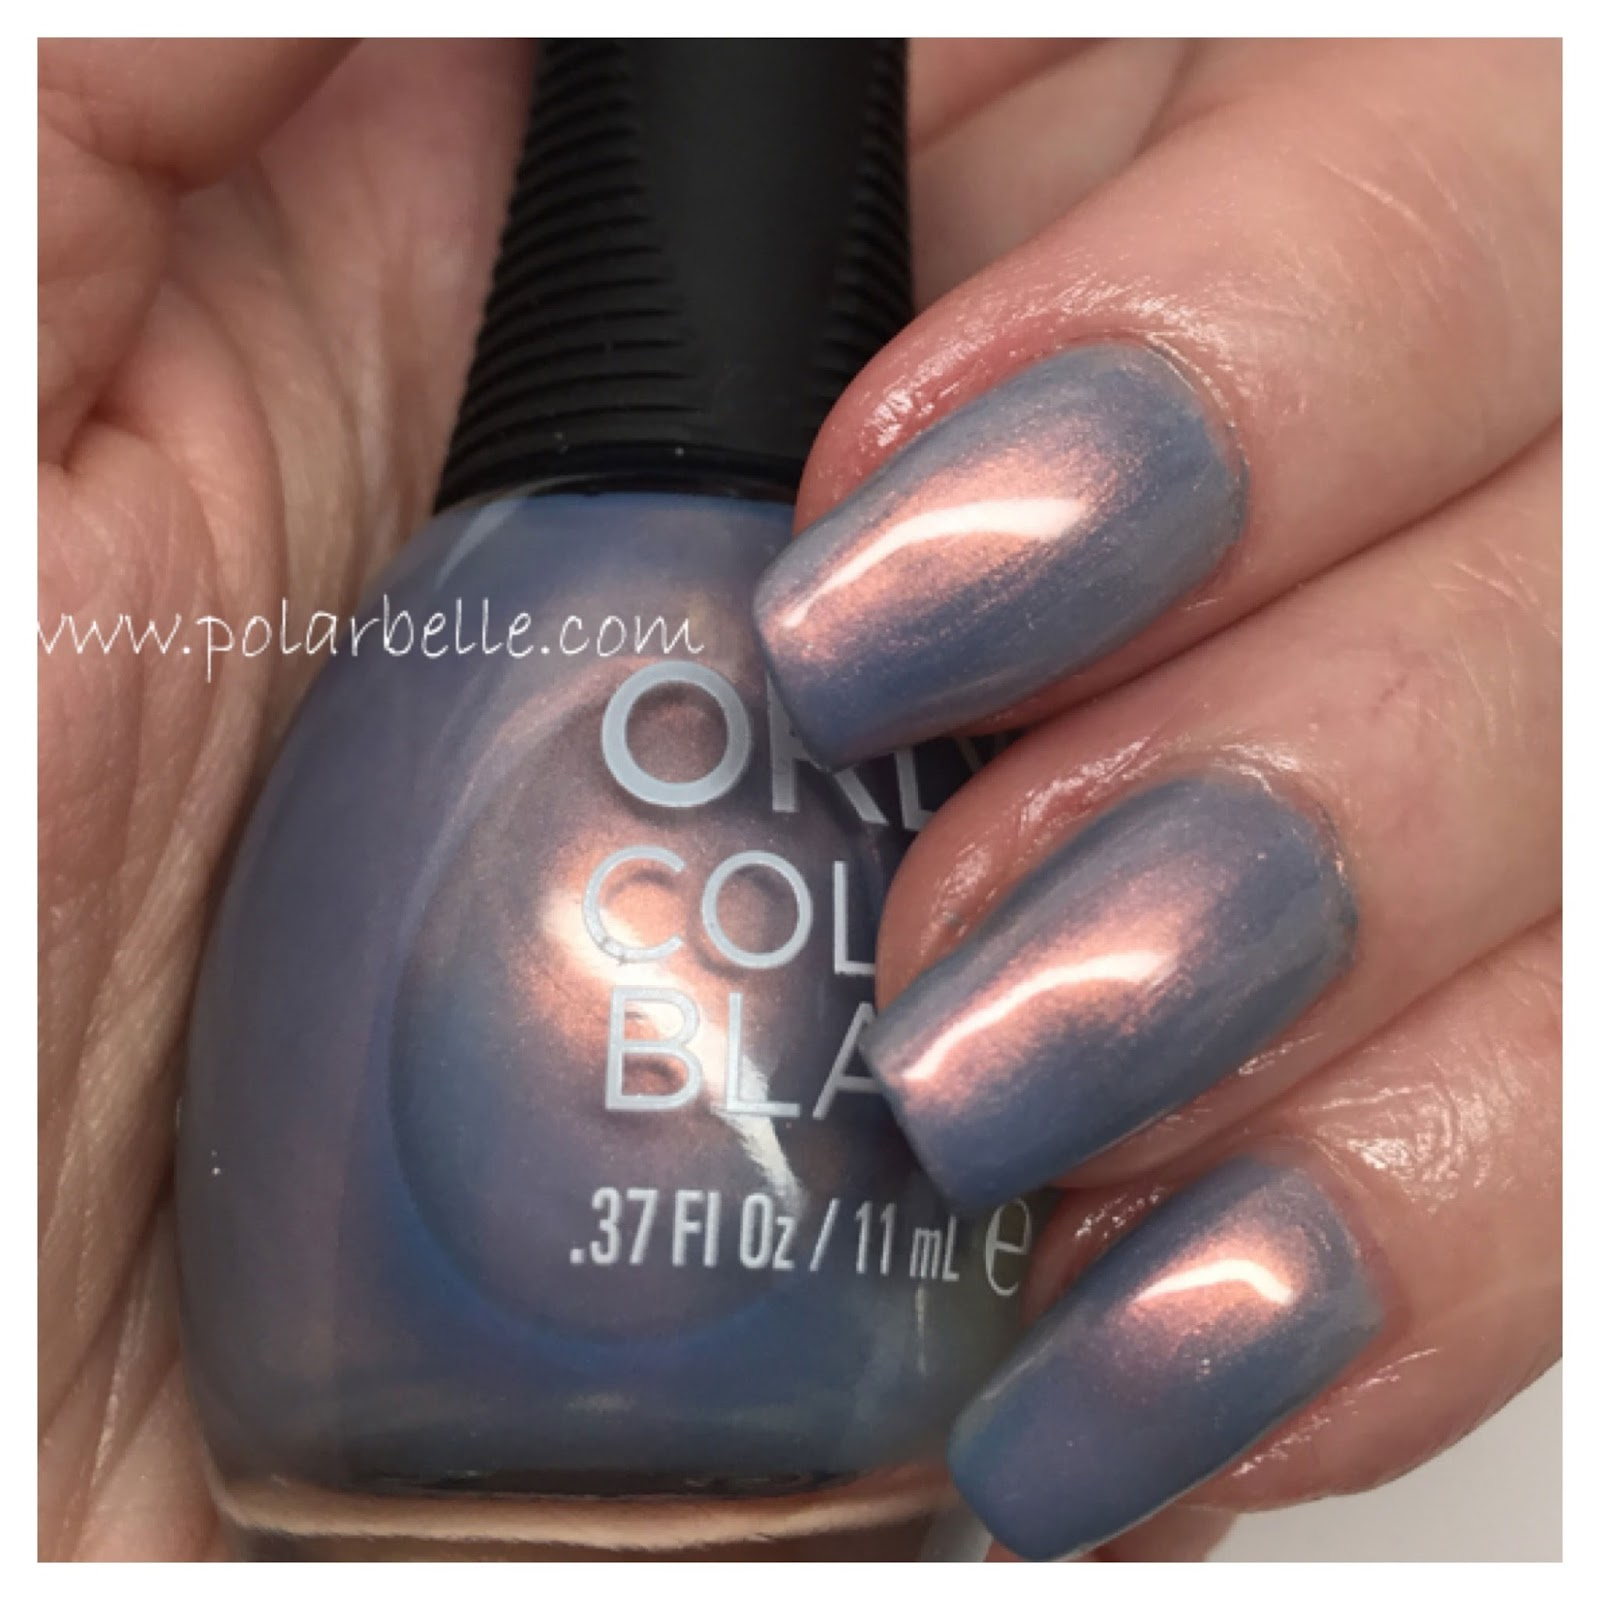 Polarbelle: Orly color blast